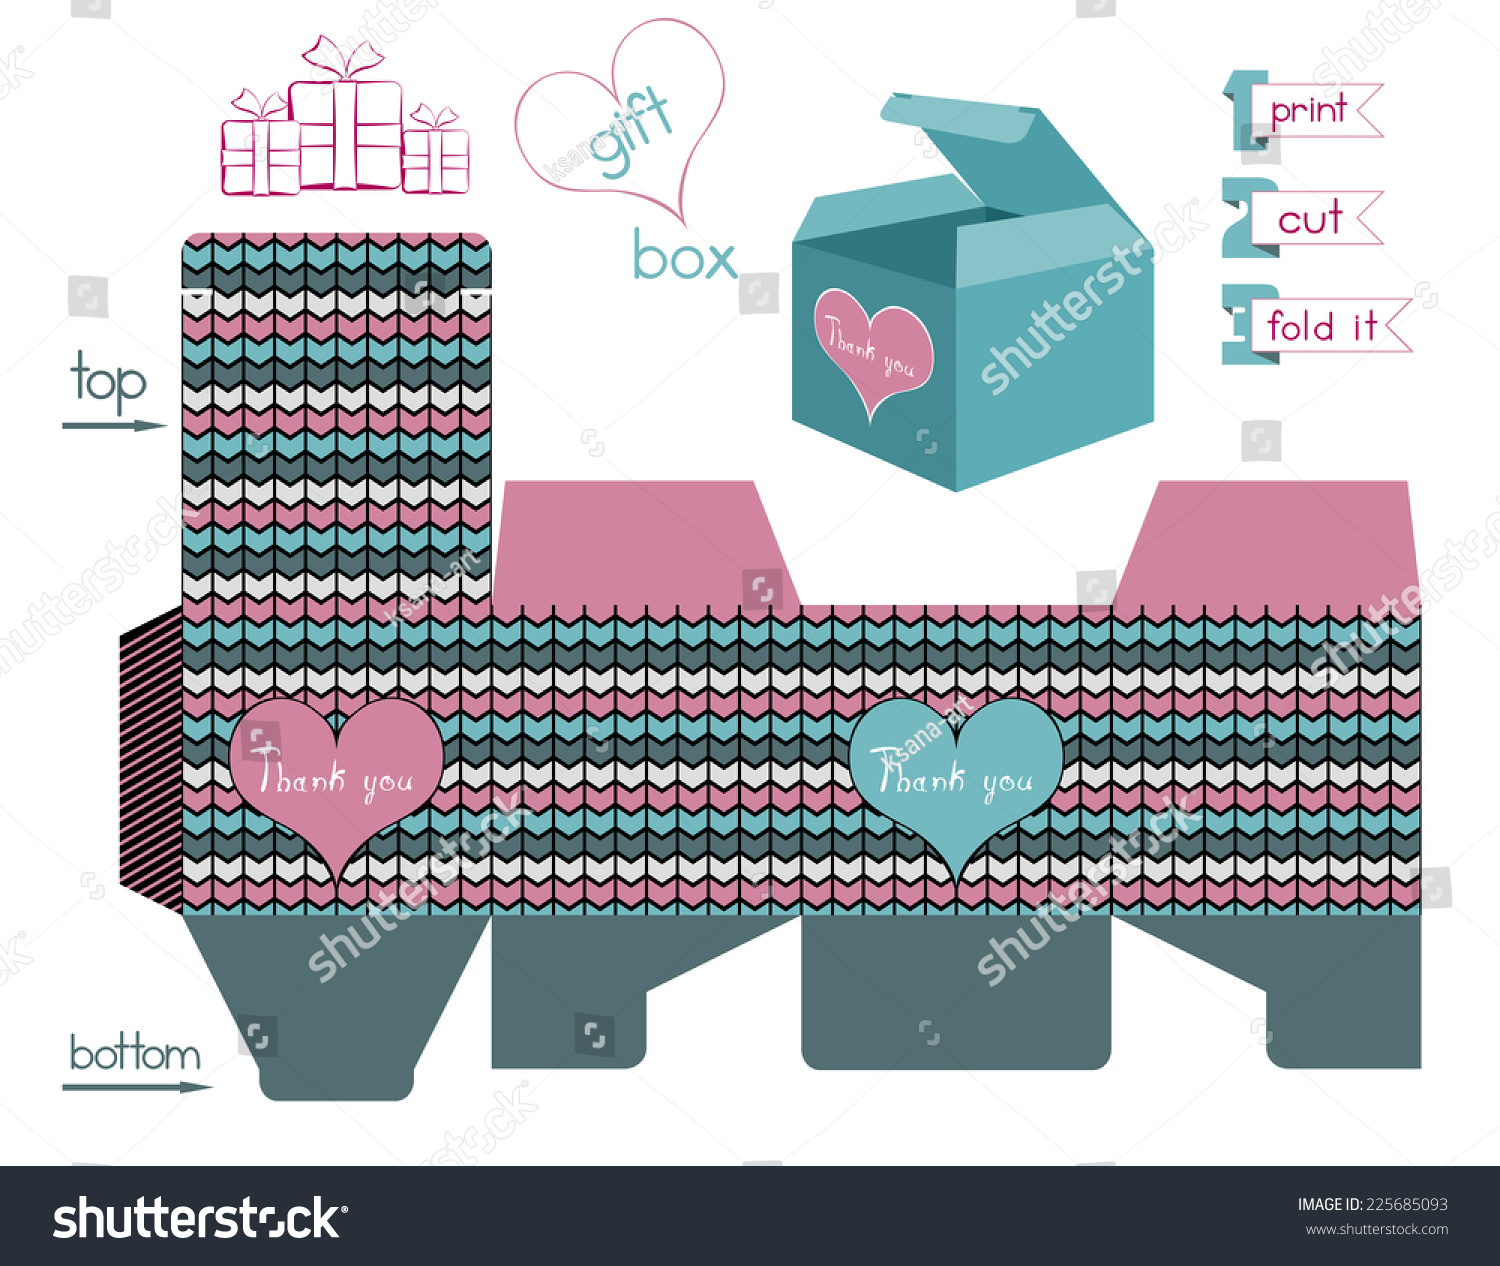 Printable Gift Box Chevron Pattern Template Stock Vector Royalty